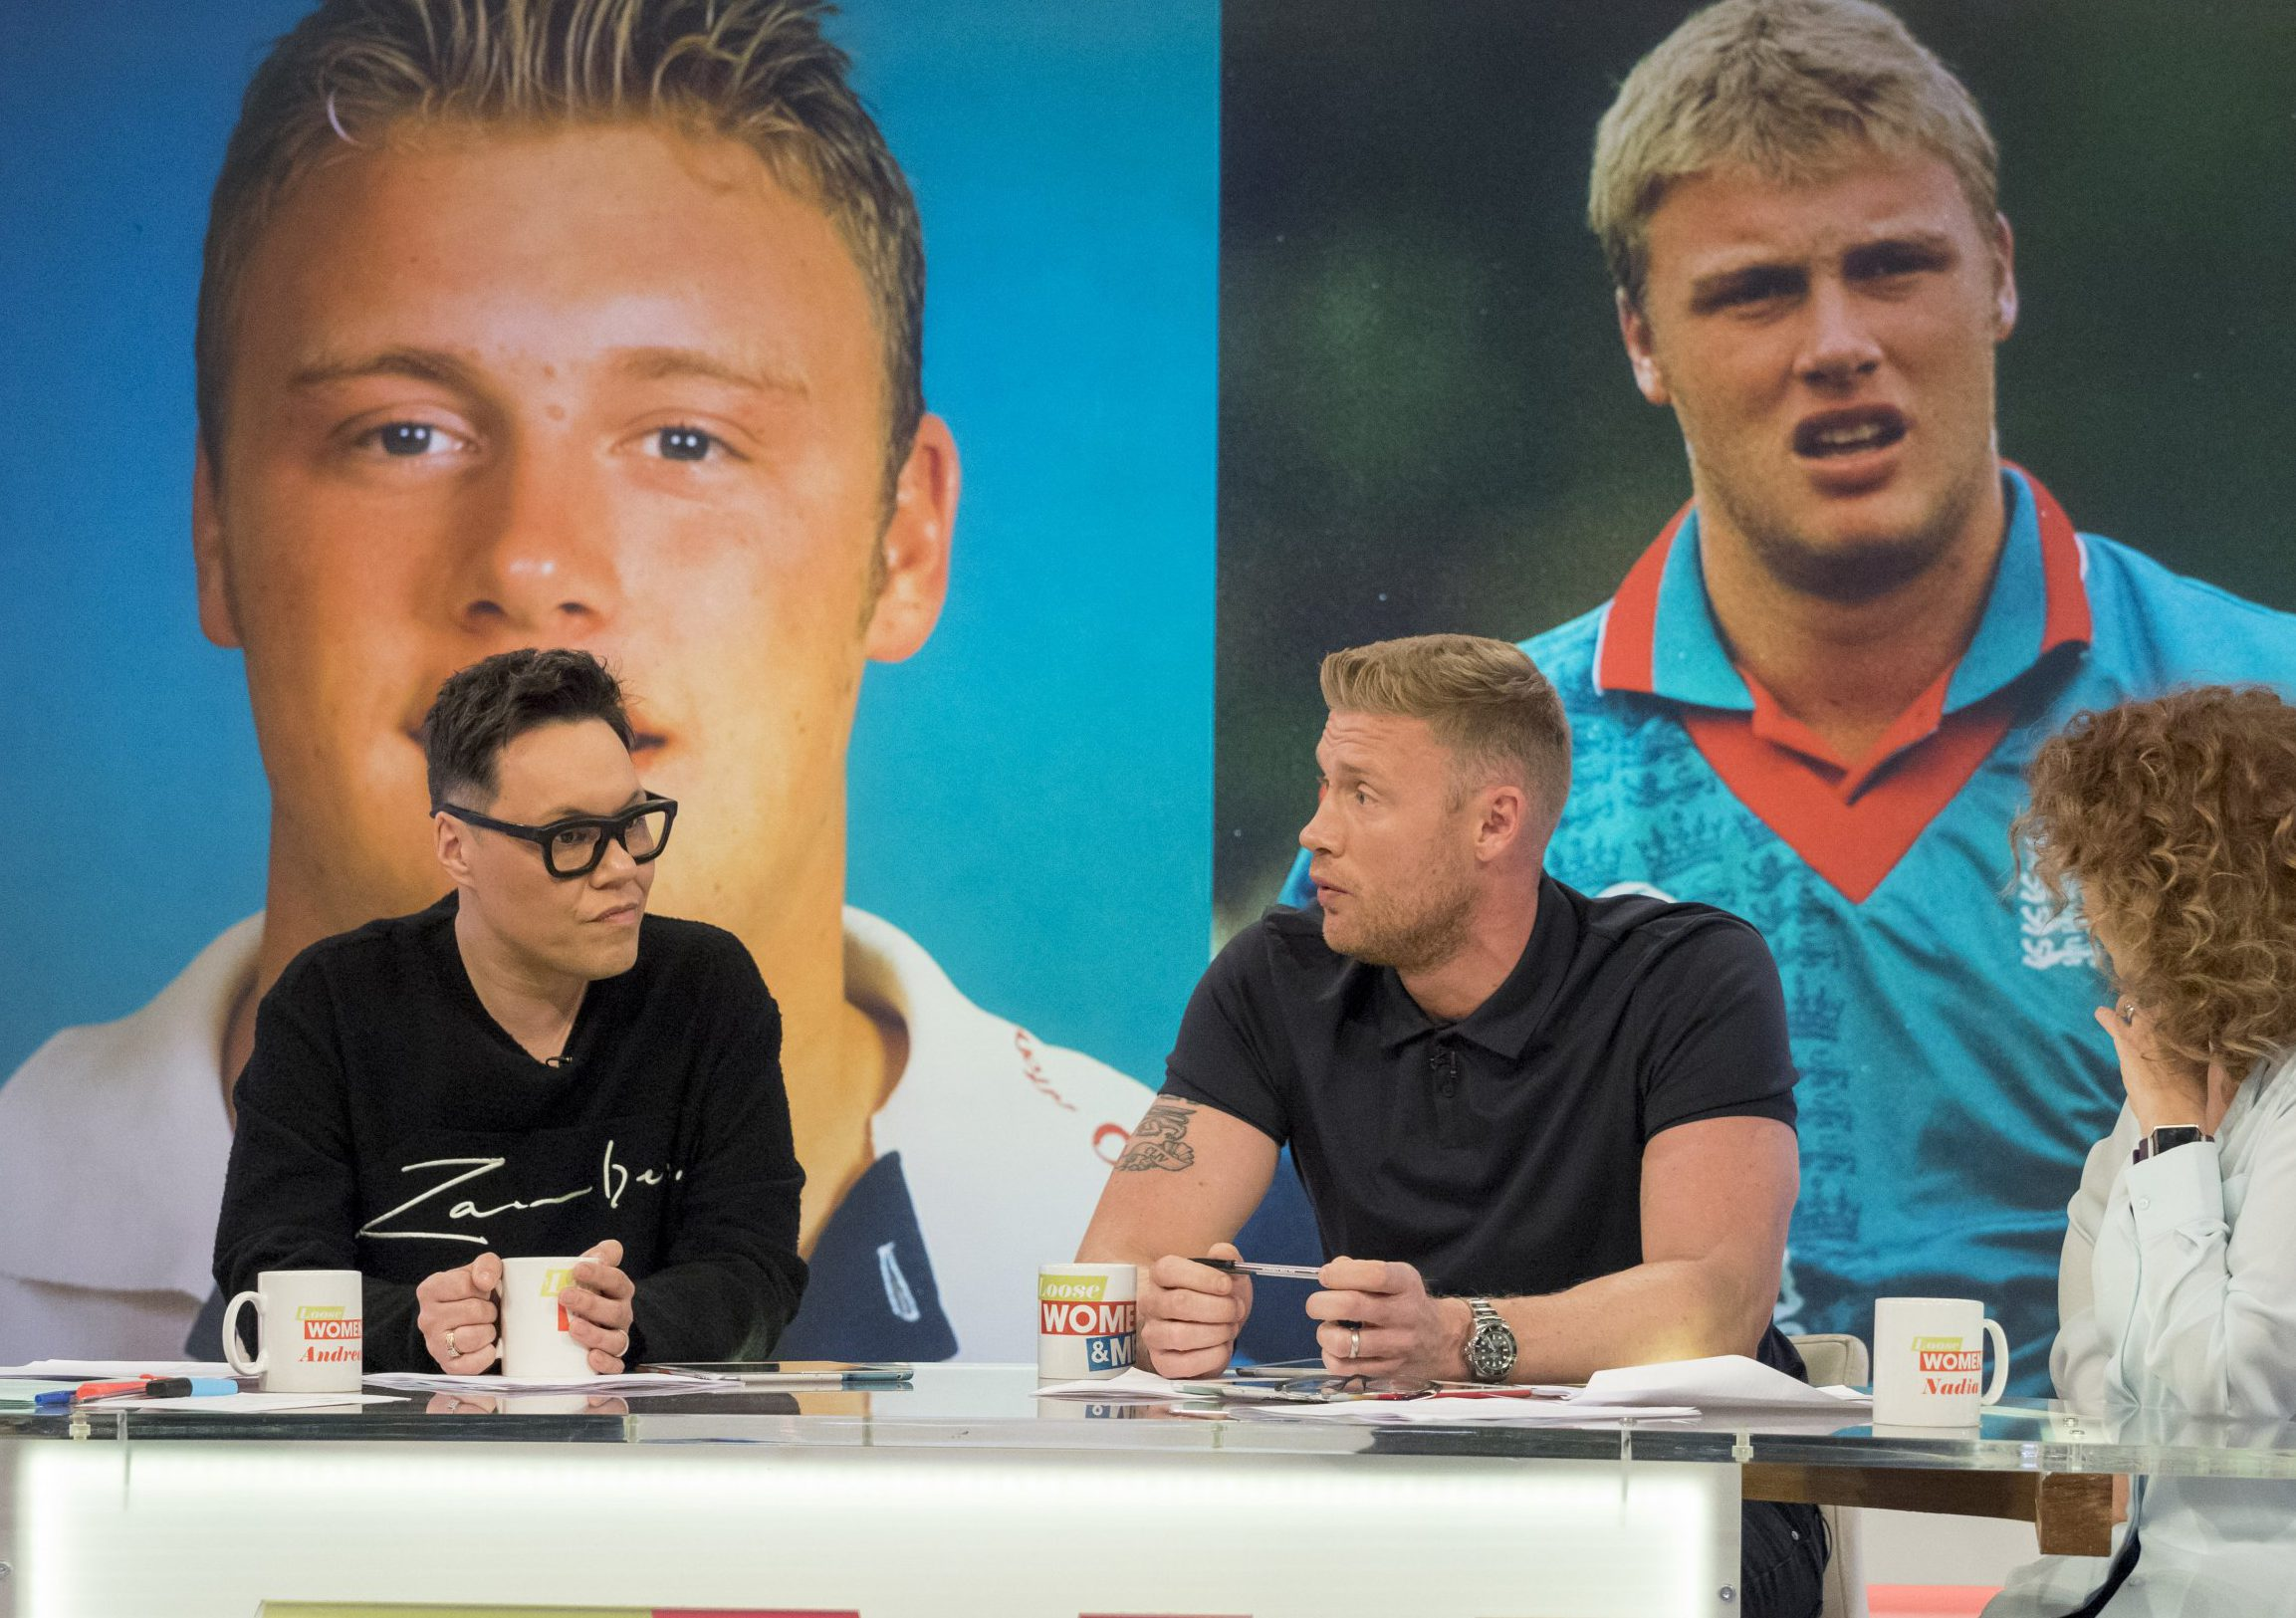 Freddie Flintoff opens up about the moment he realised he had an eating disorder